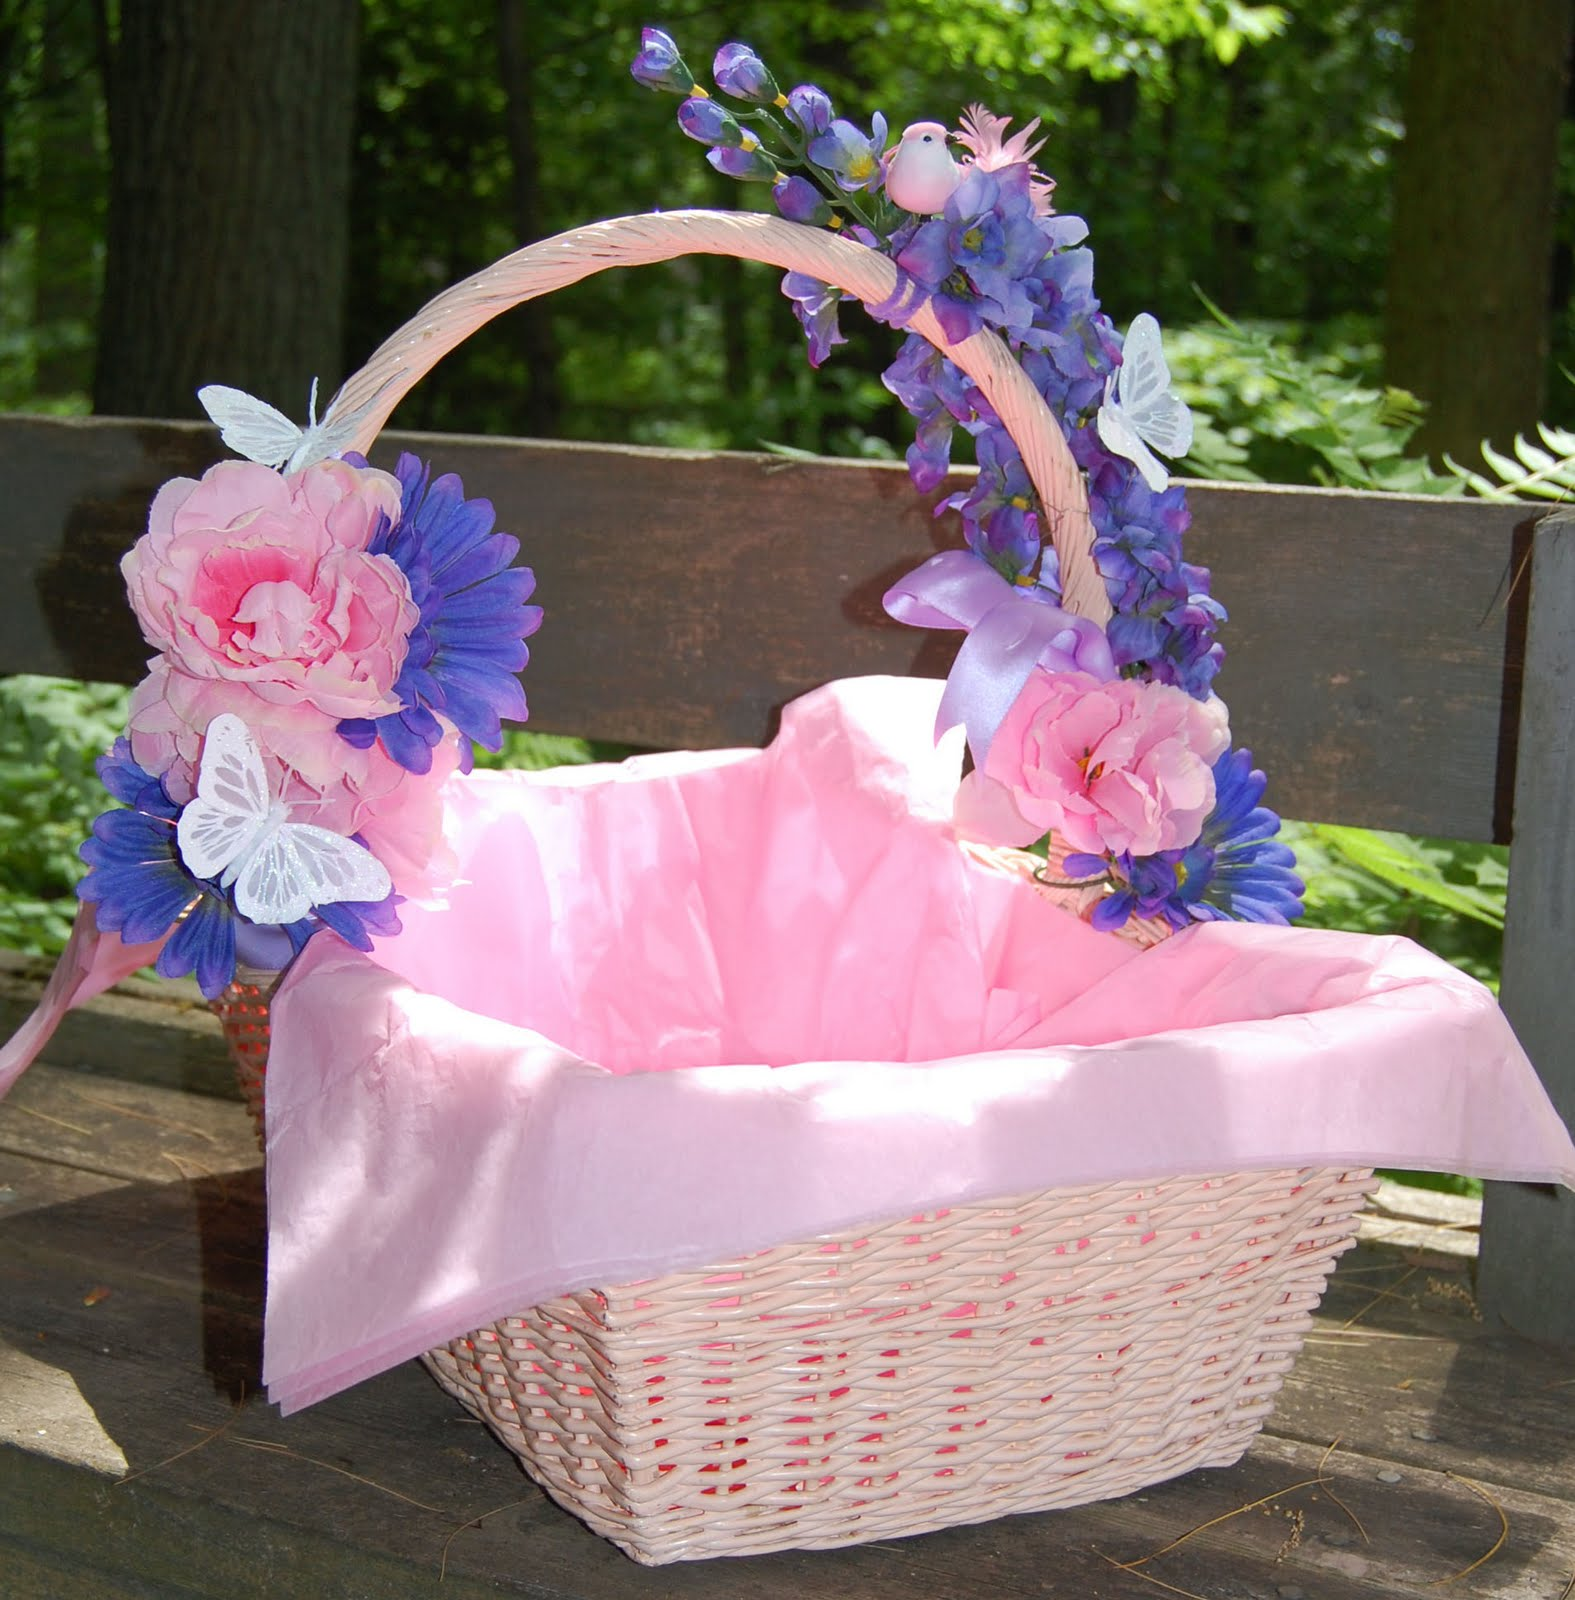 decorative baskets for wedding how to decorate baskets decoratingspecial 3445